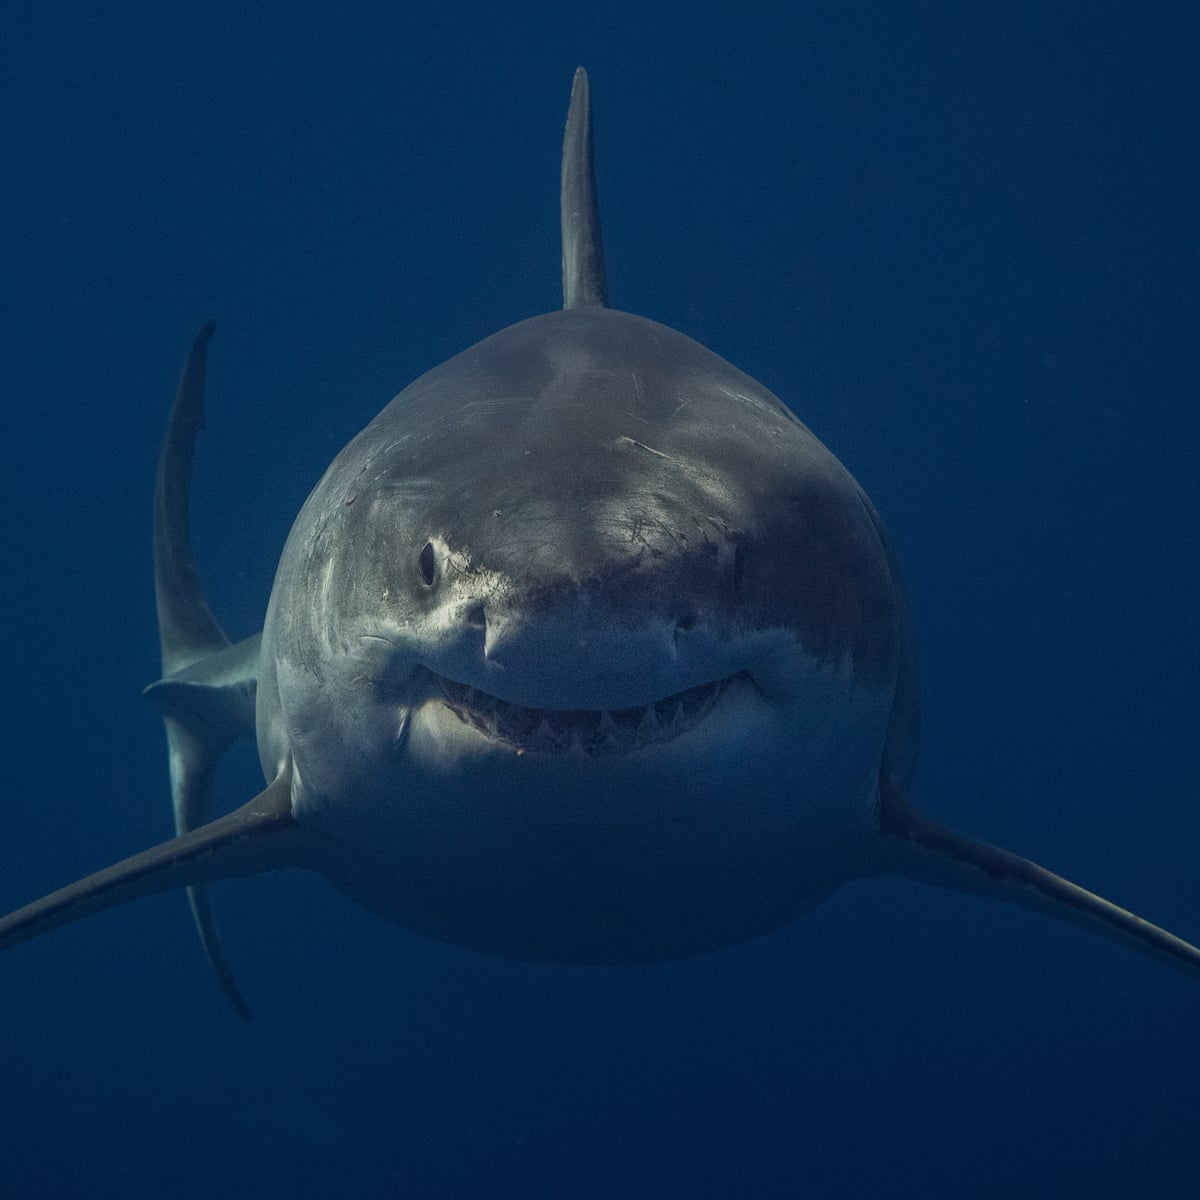 Swim On Sharks Nothing To See Here Could Fake Kelp Prevent Attacks Sharks The Guardian